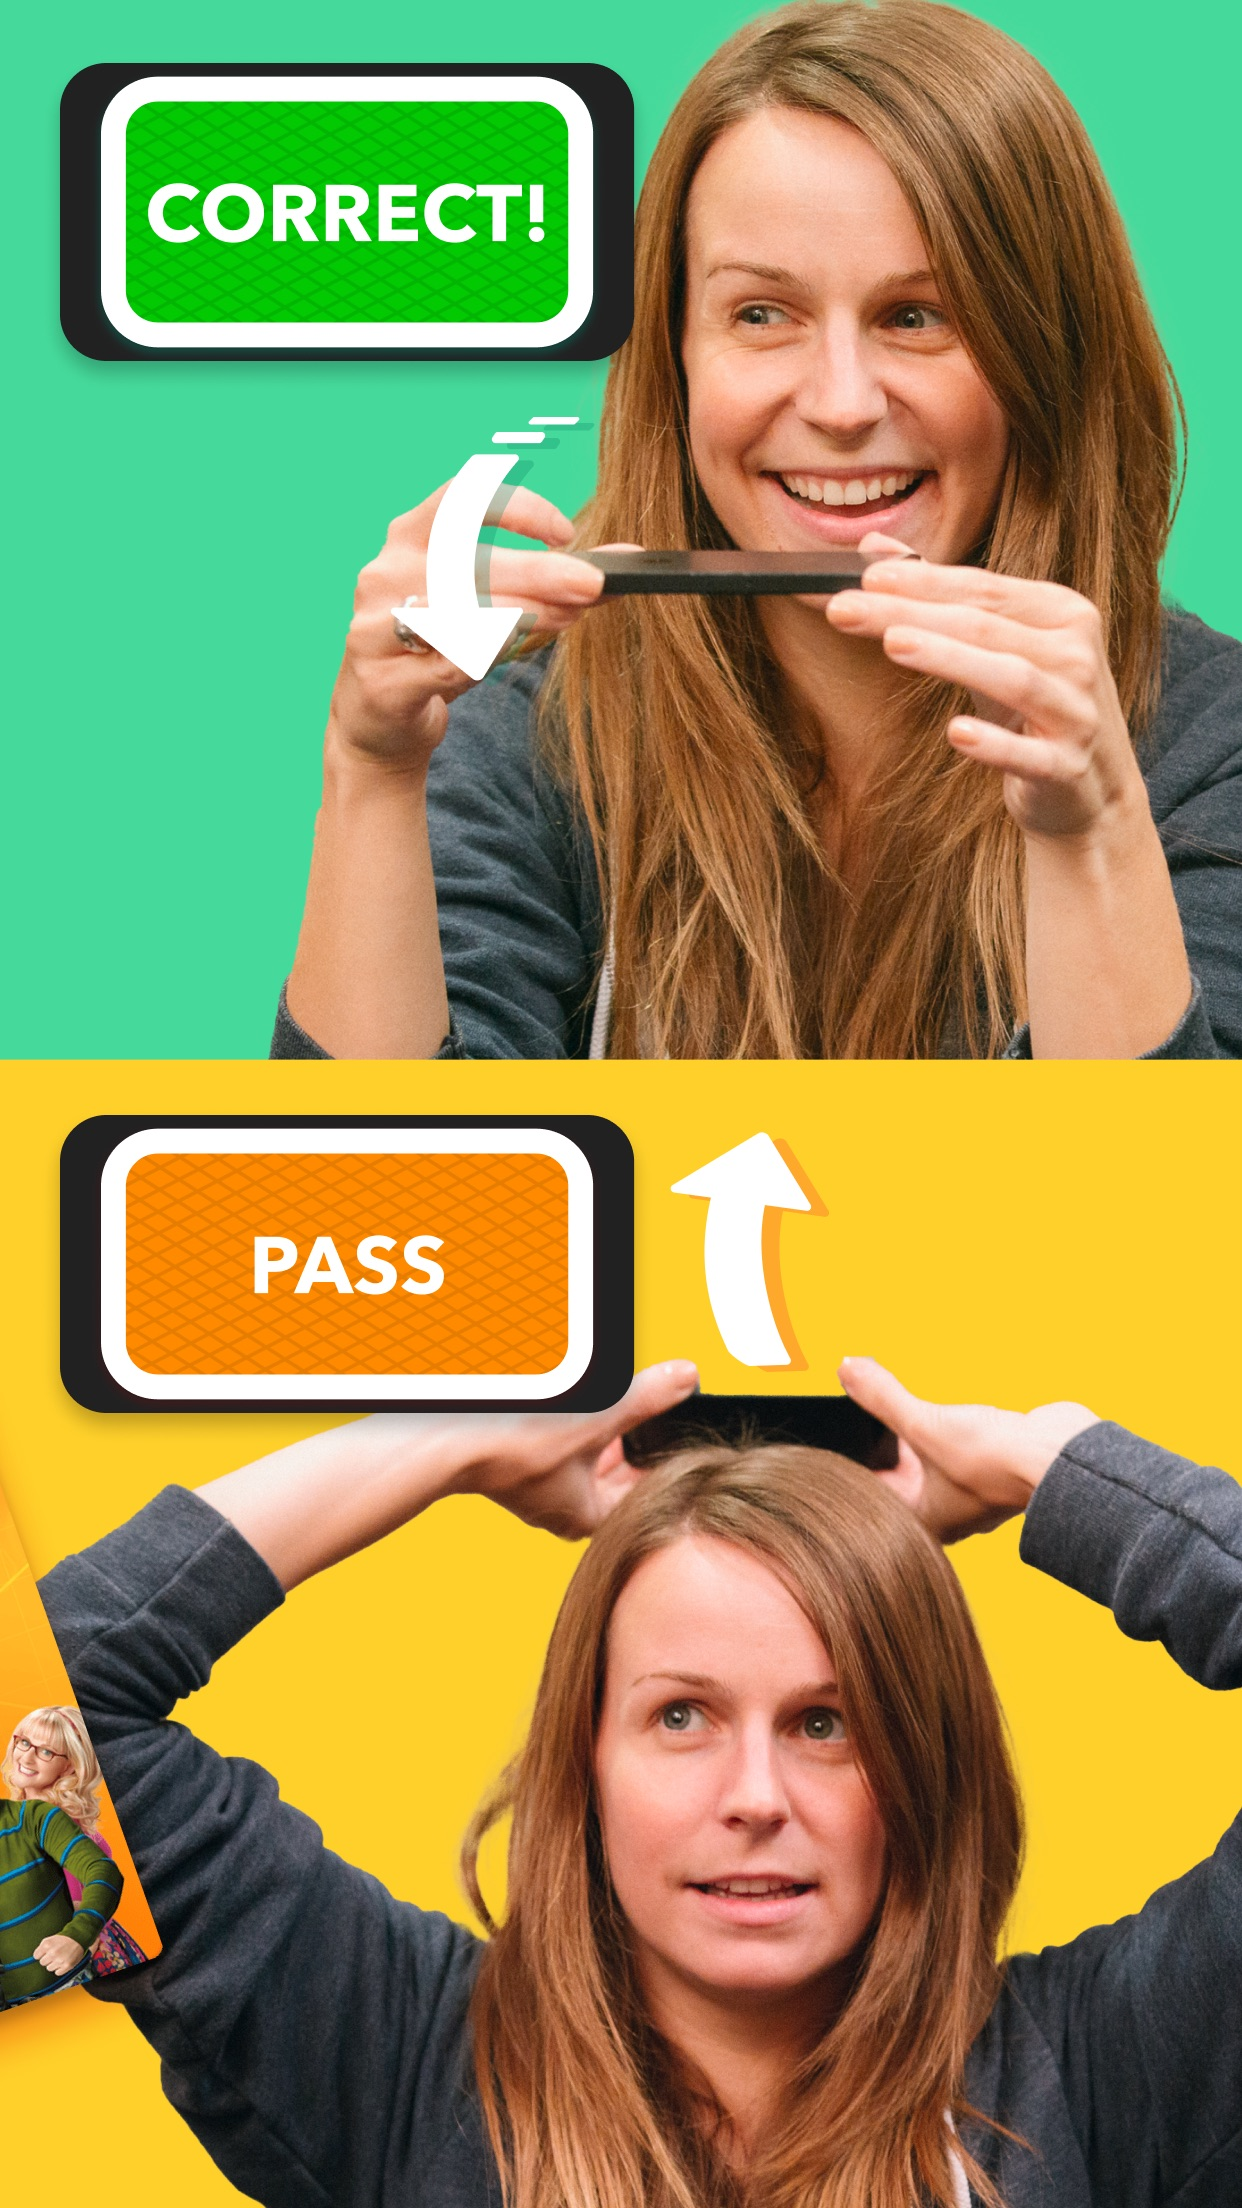 Heads Up! Funny charades game Screenshot